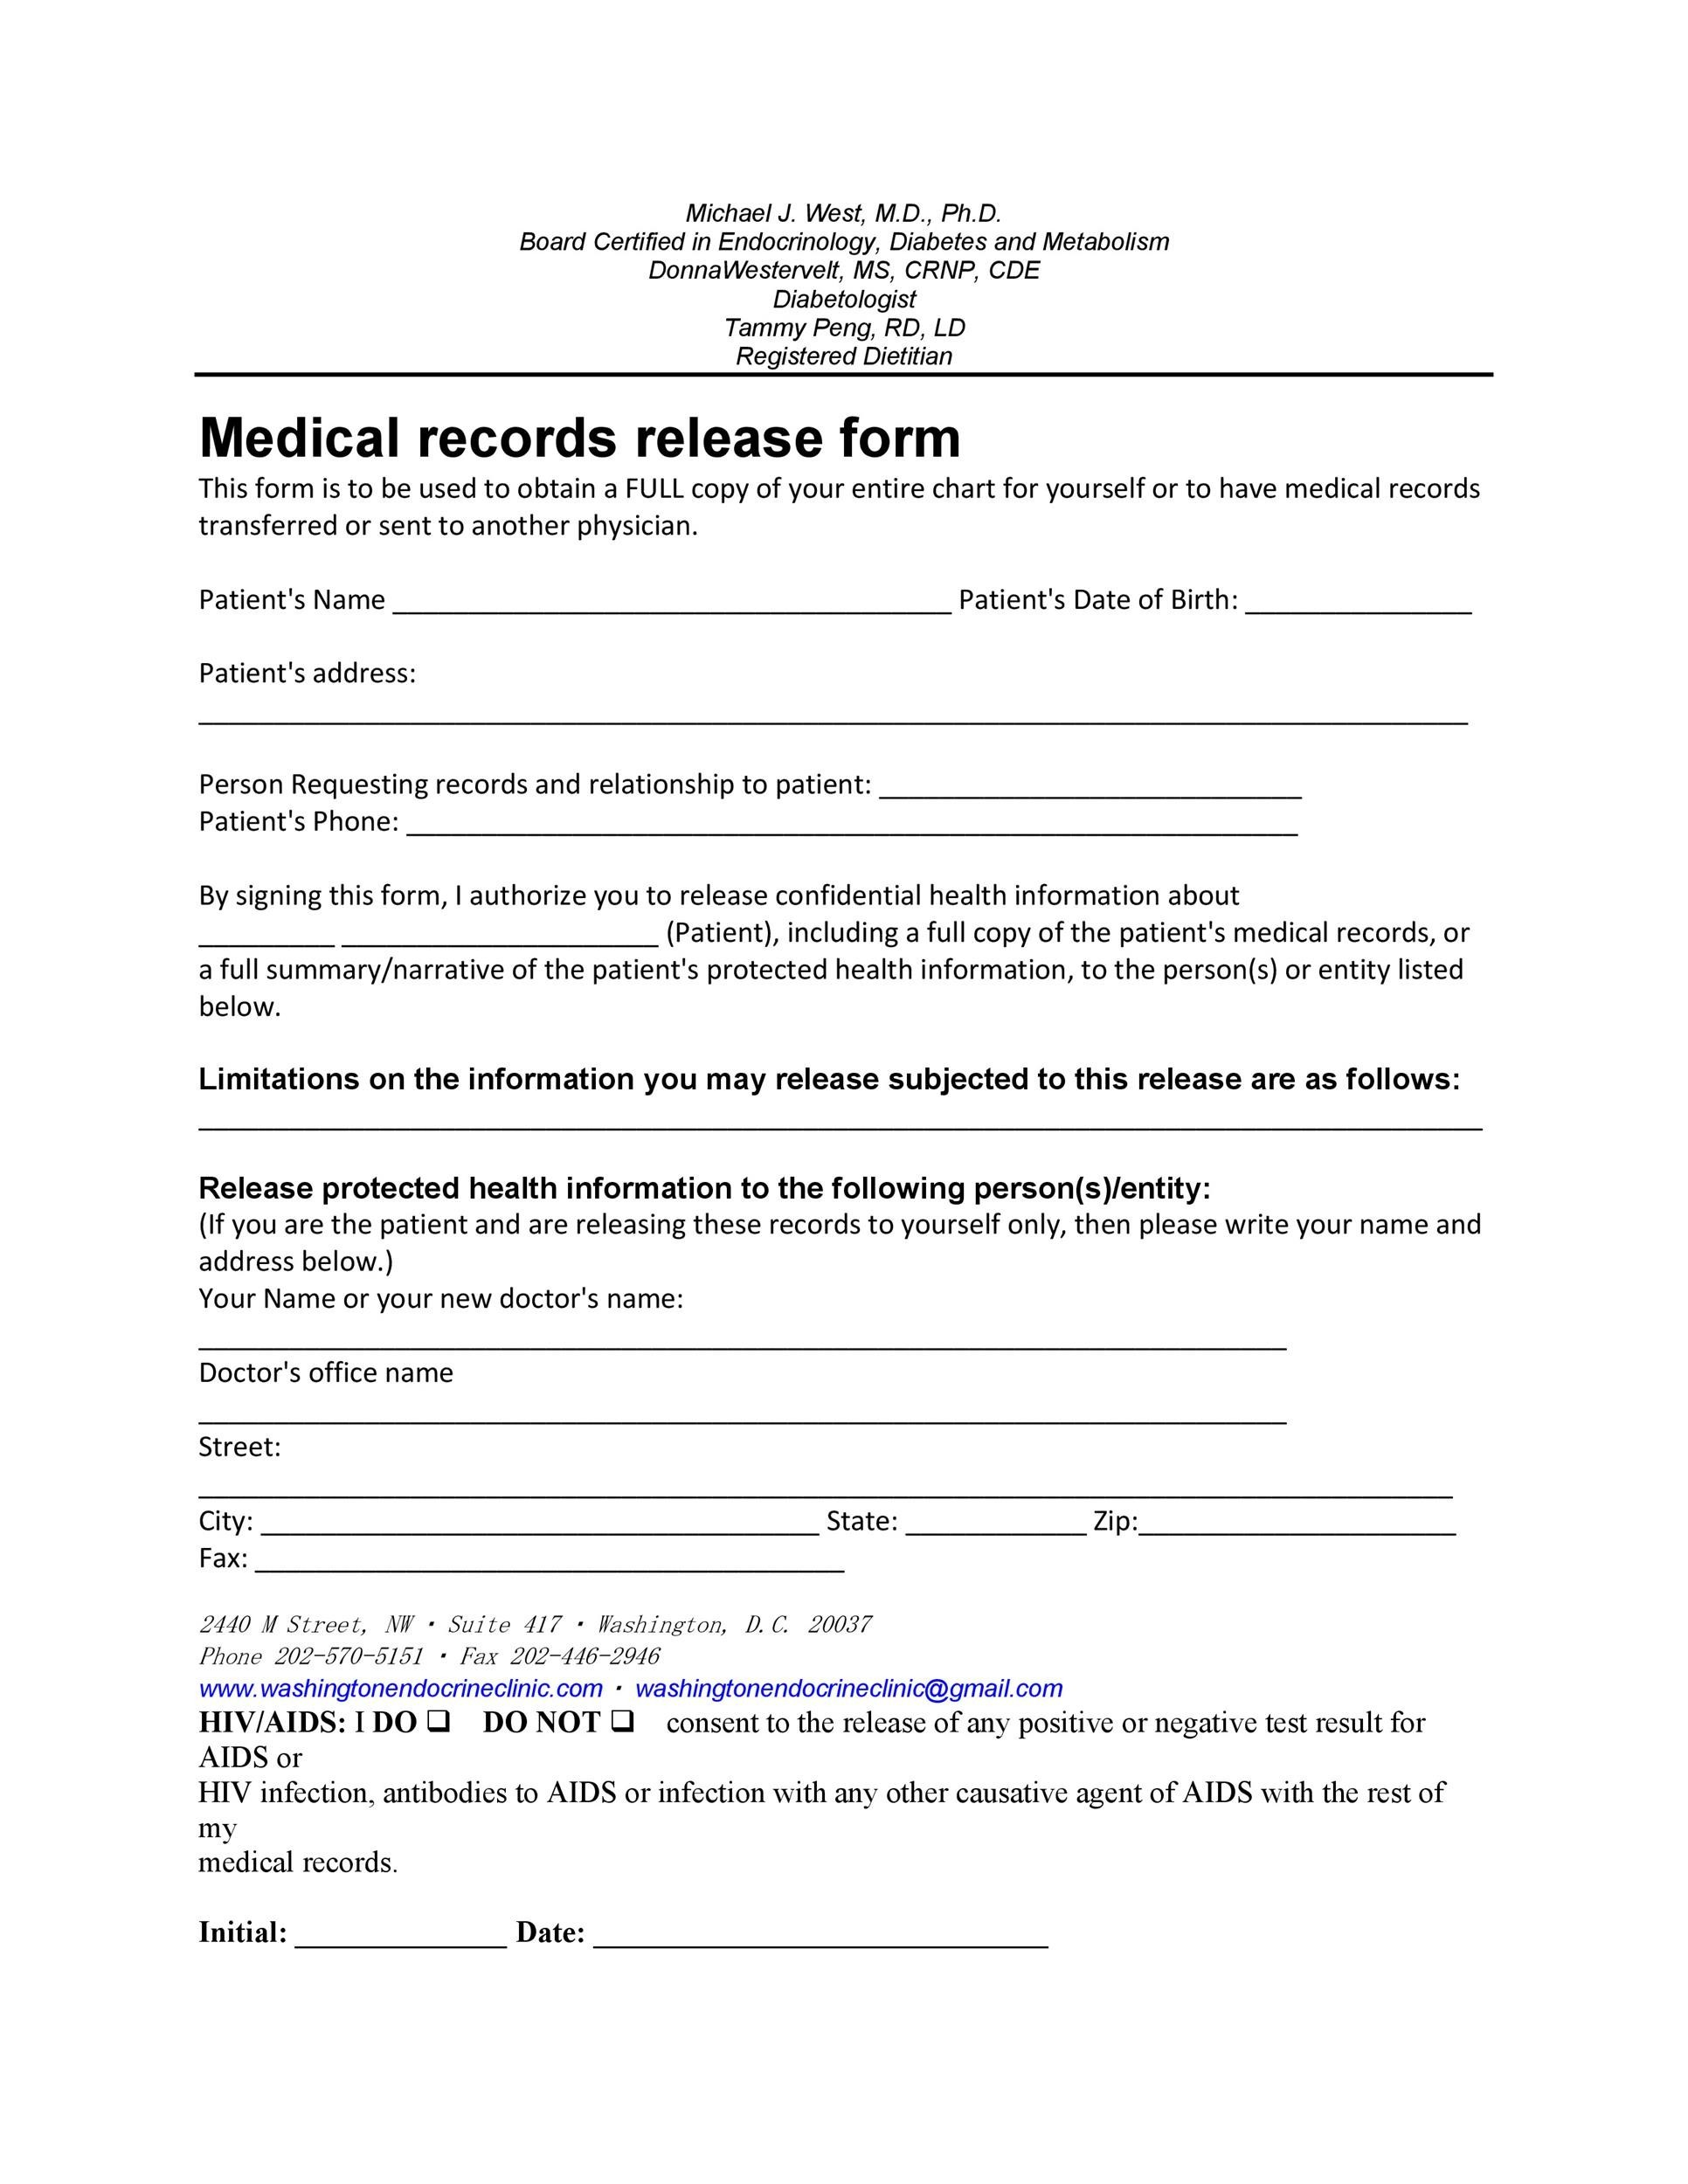 Medical Records Release Form Photographer Print Release Form